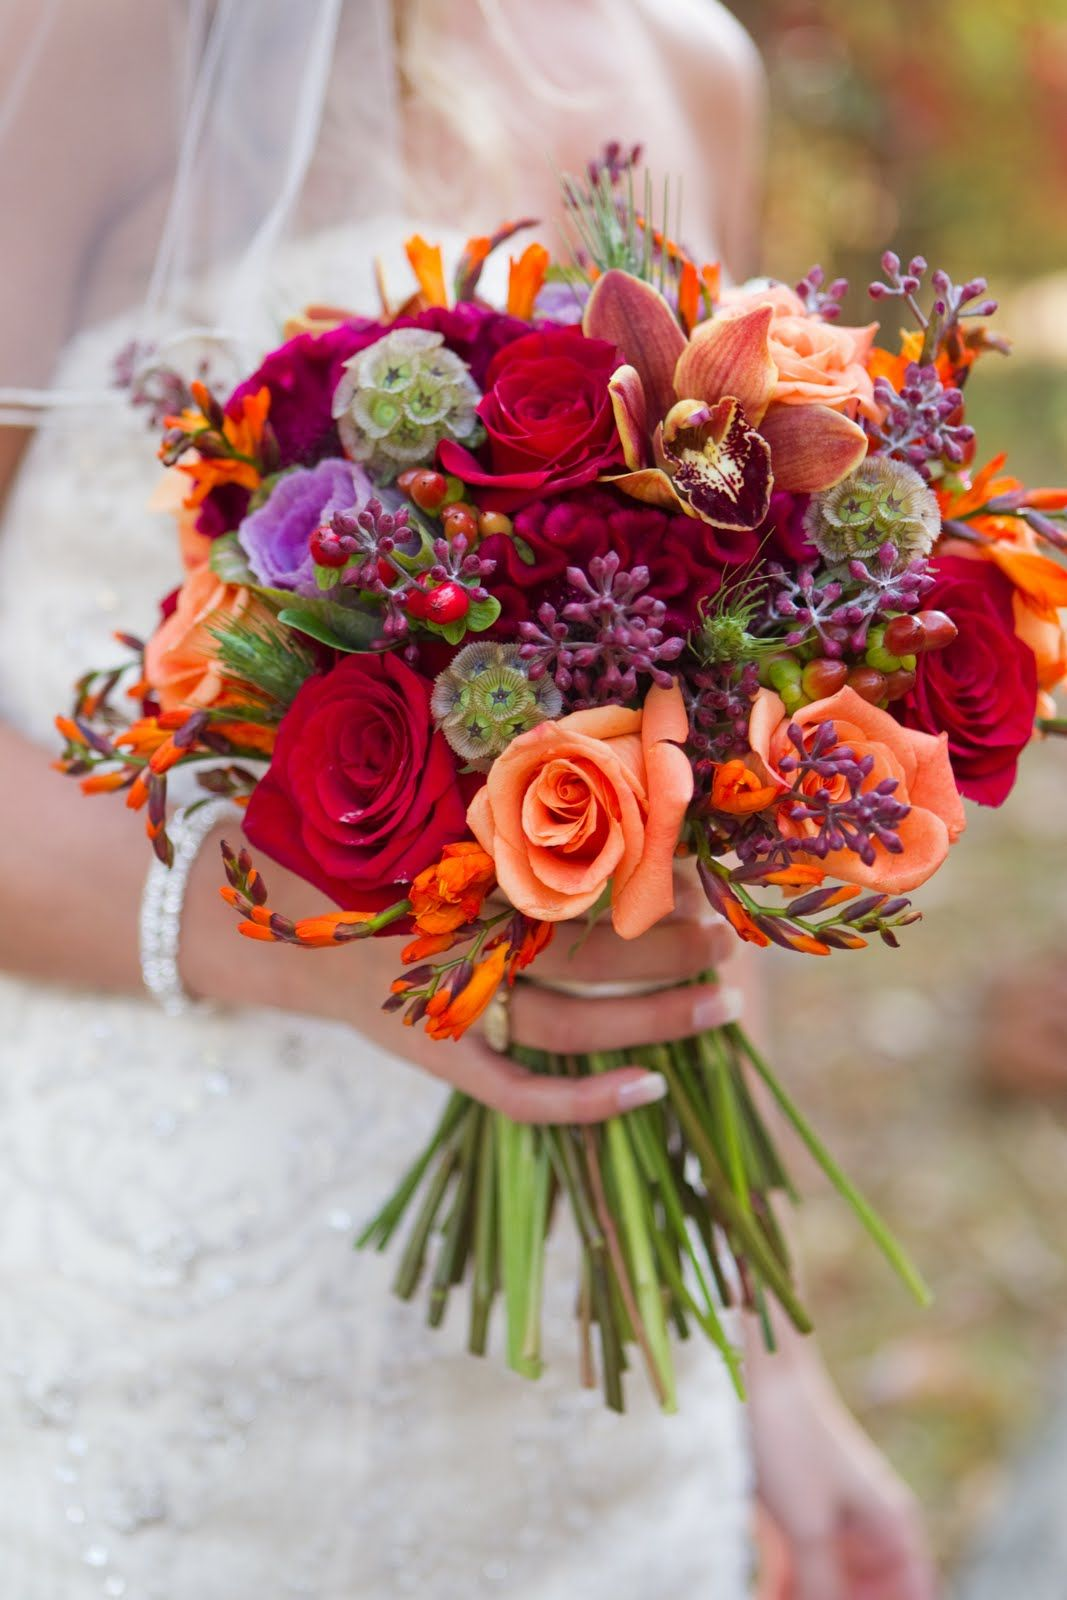 Fall/Autumn Wedding Bouquet Red Roses, Orange Roses